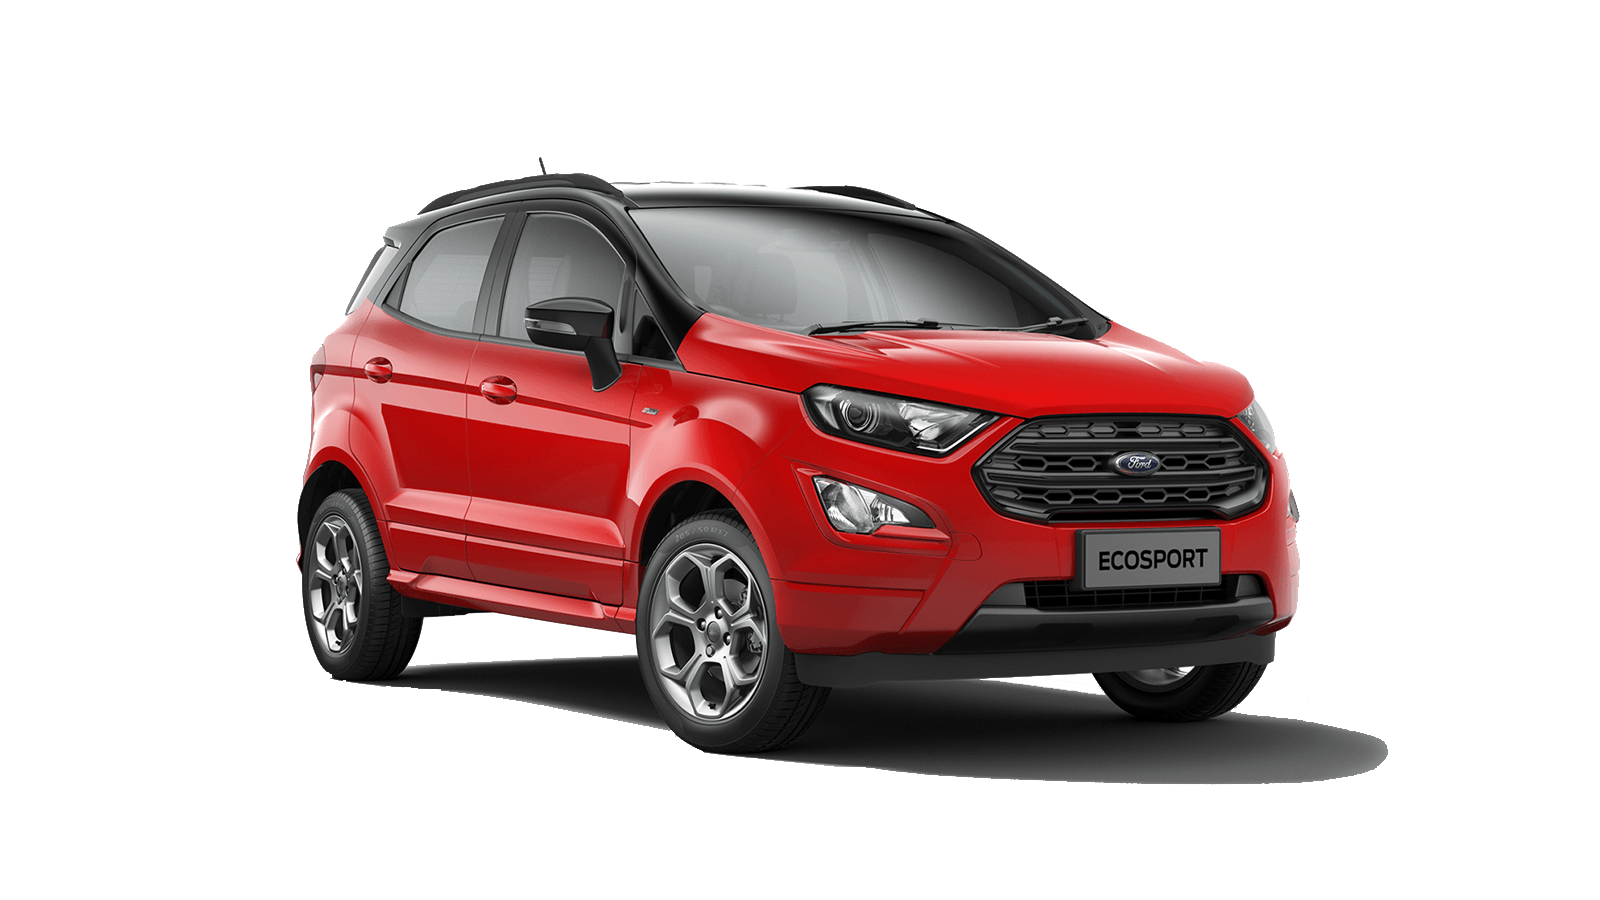 New Ford NEW ECOSPORT at Tremont Garage